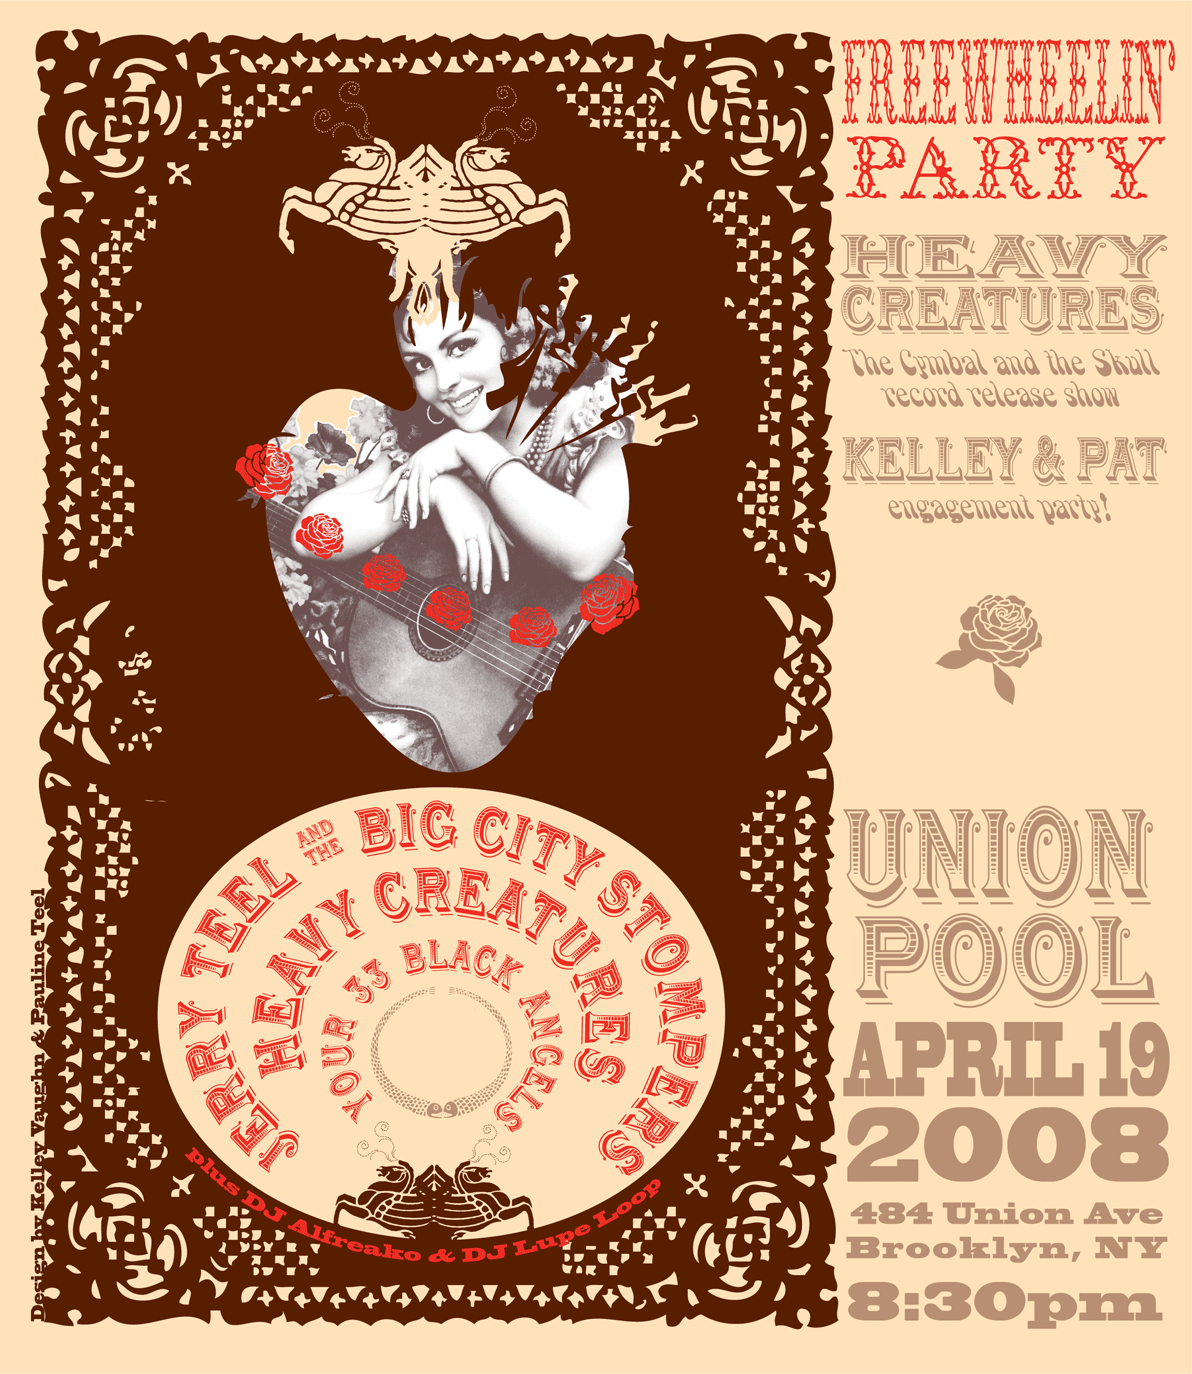 2008: Heavy Creatures Record Release Party at Union Pool